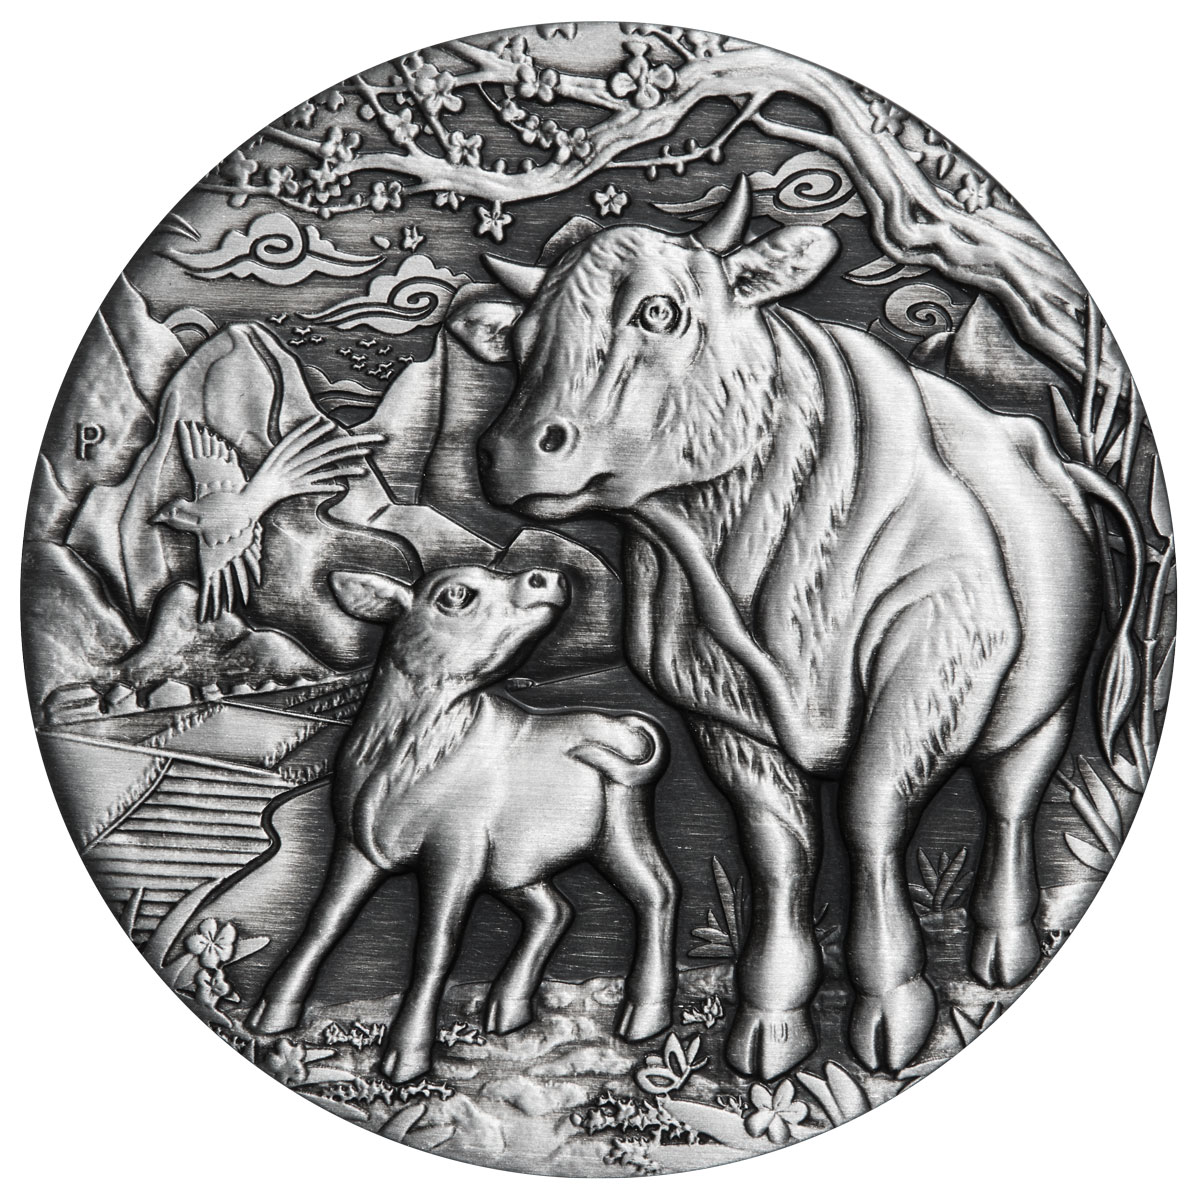 2021-P Australia 2 oz Silver Lunar Year of the Ox Antiqued $2 Coin GEM BU OGP